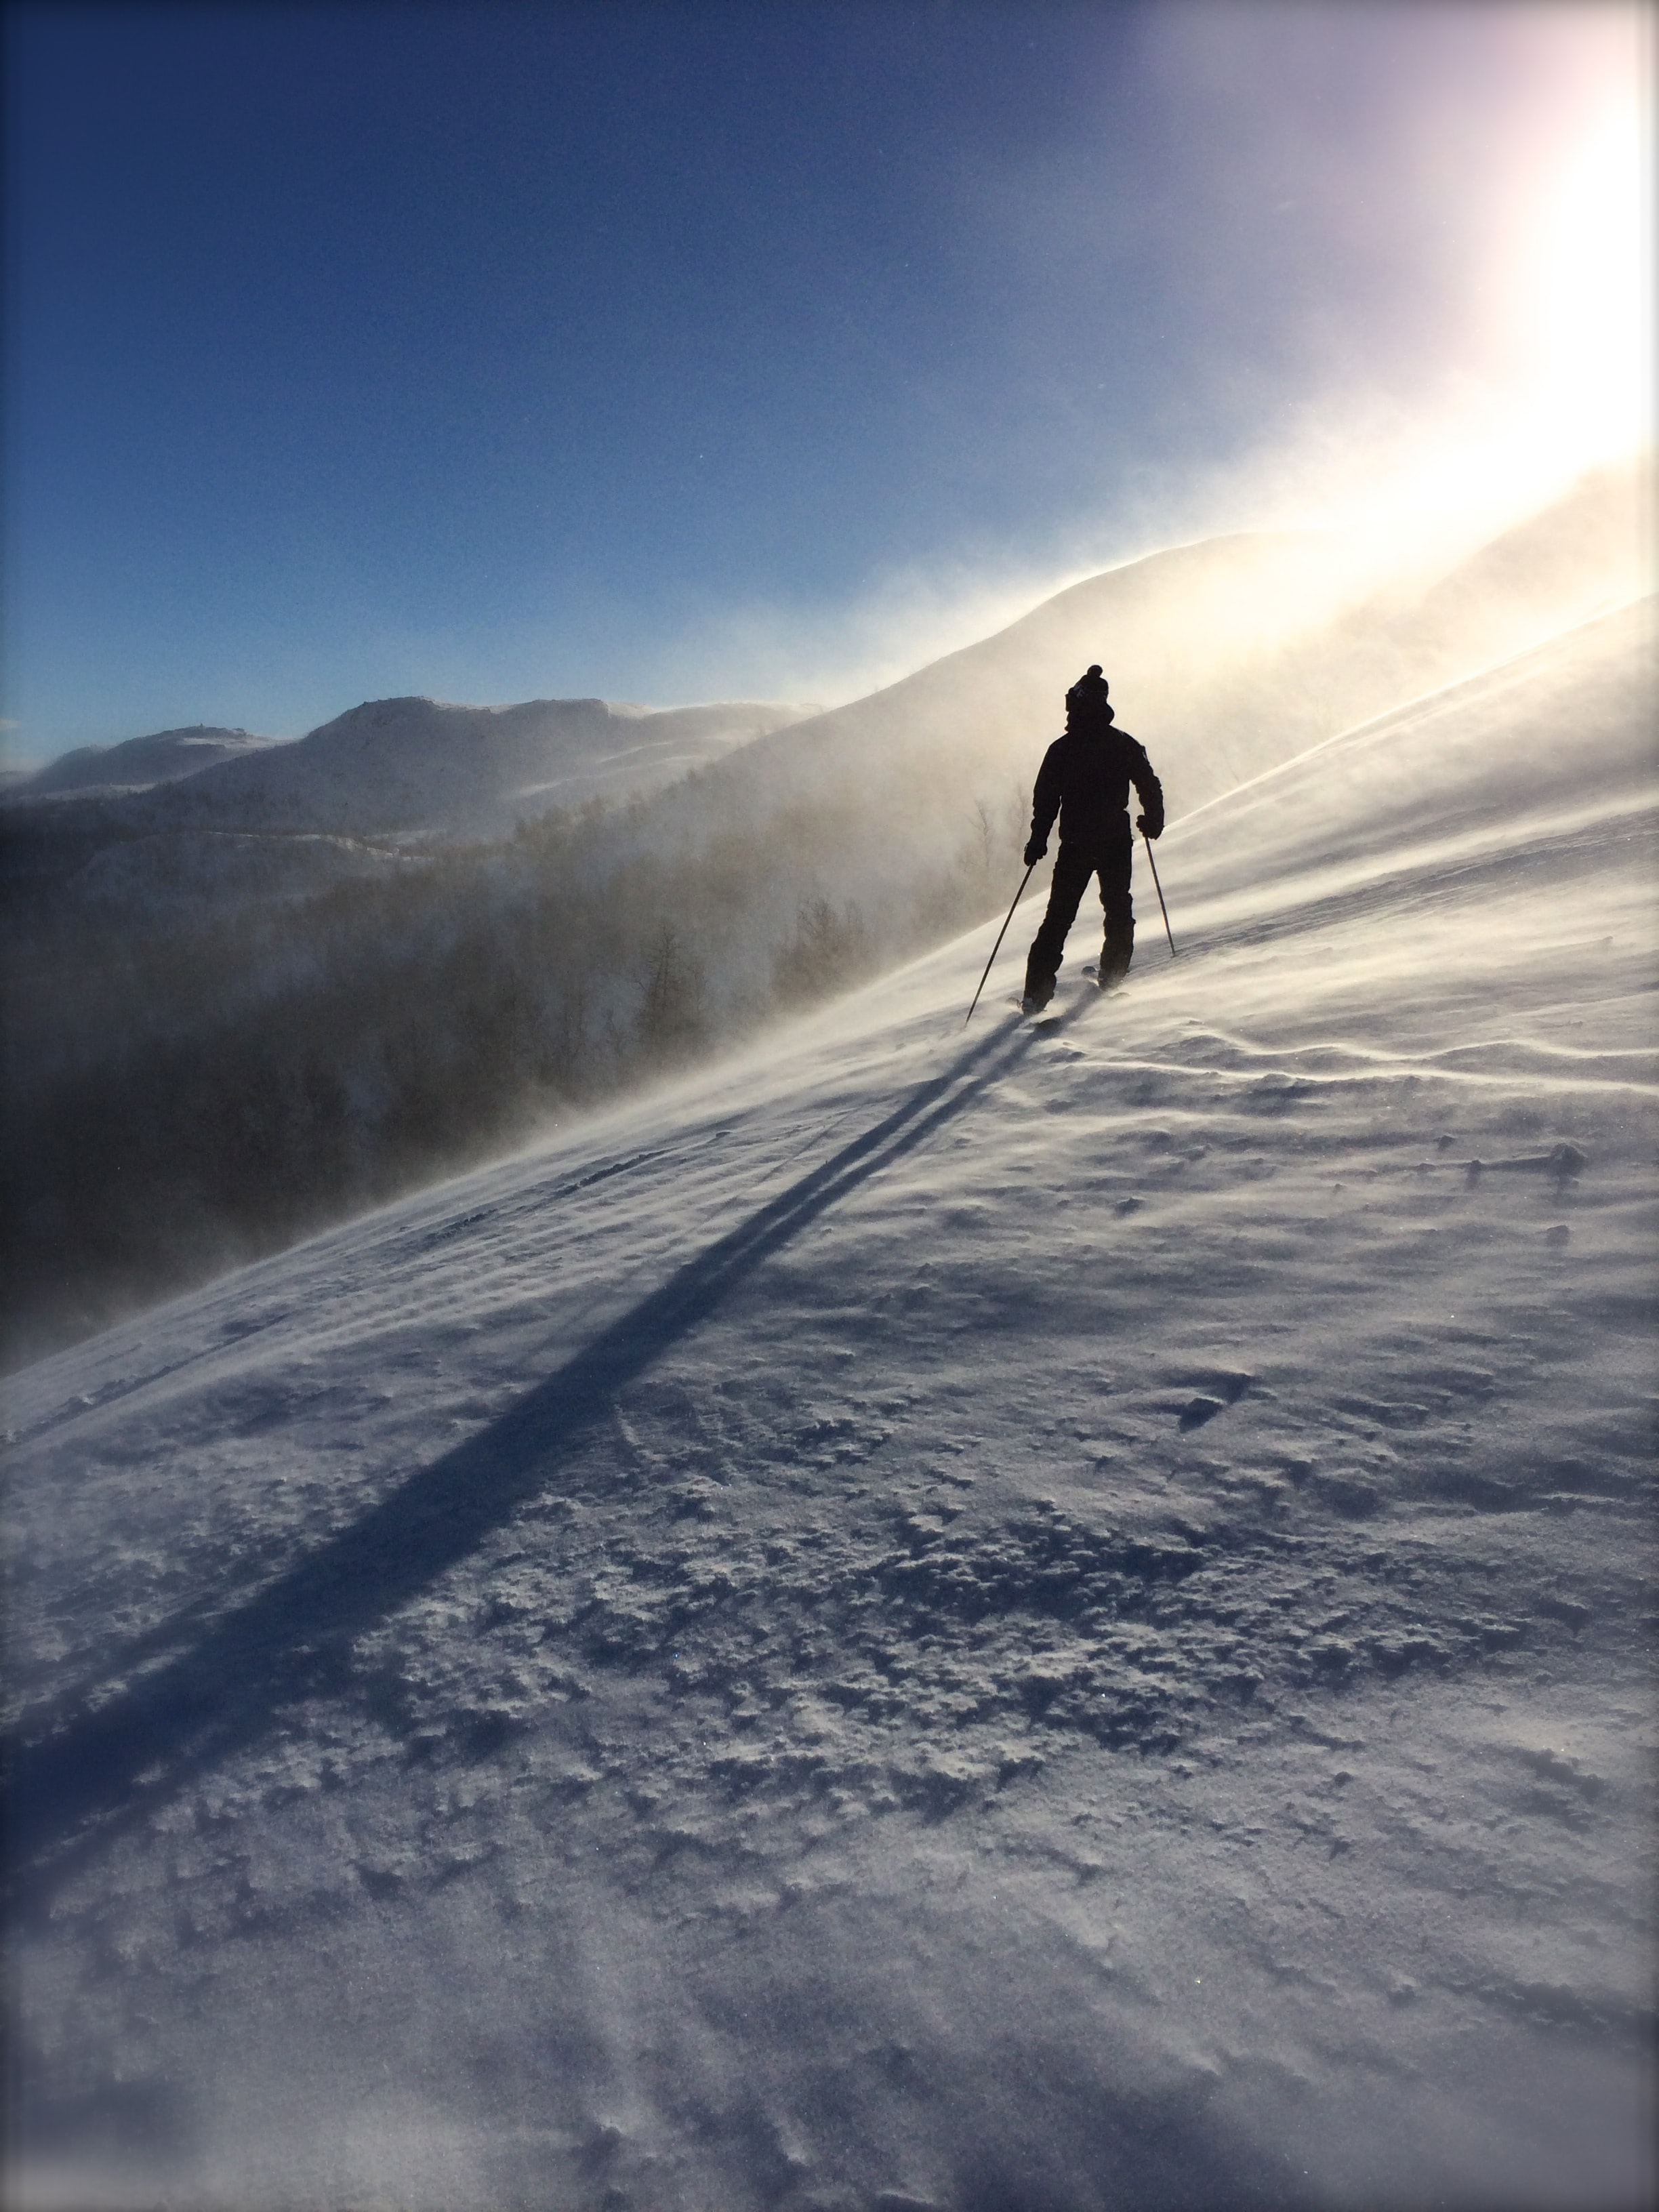 A silhouette of a skier going down a sunny snow slope